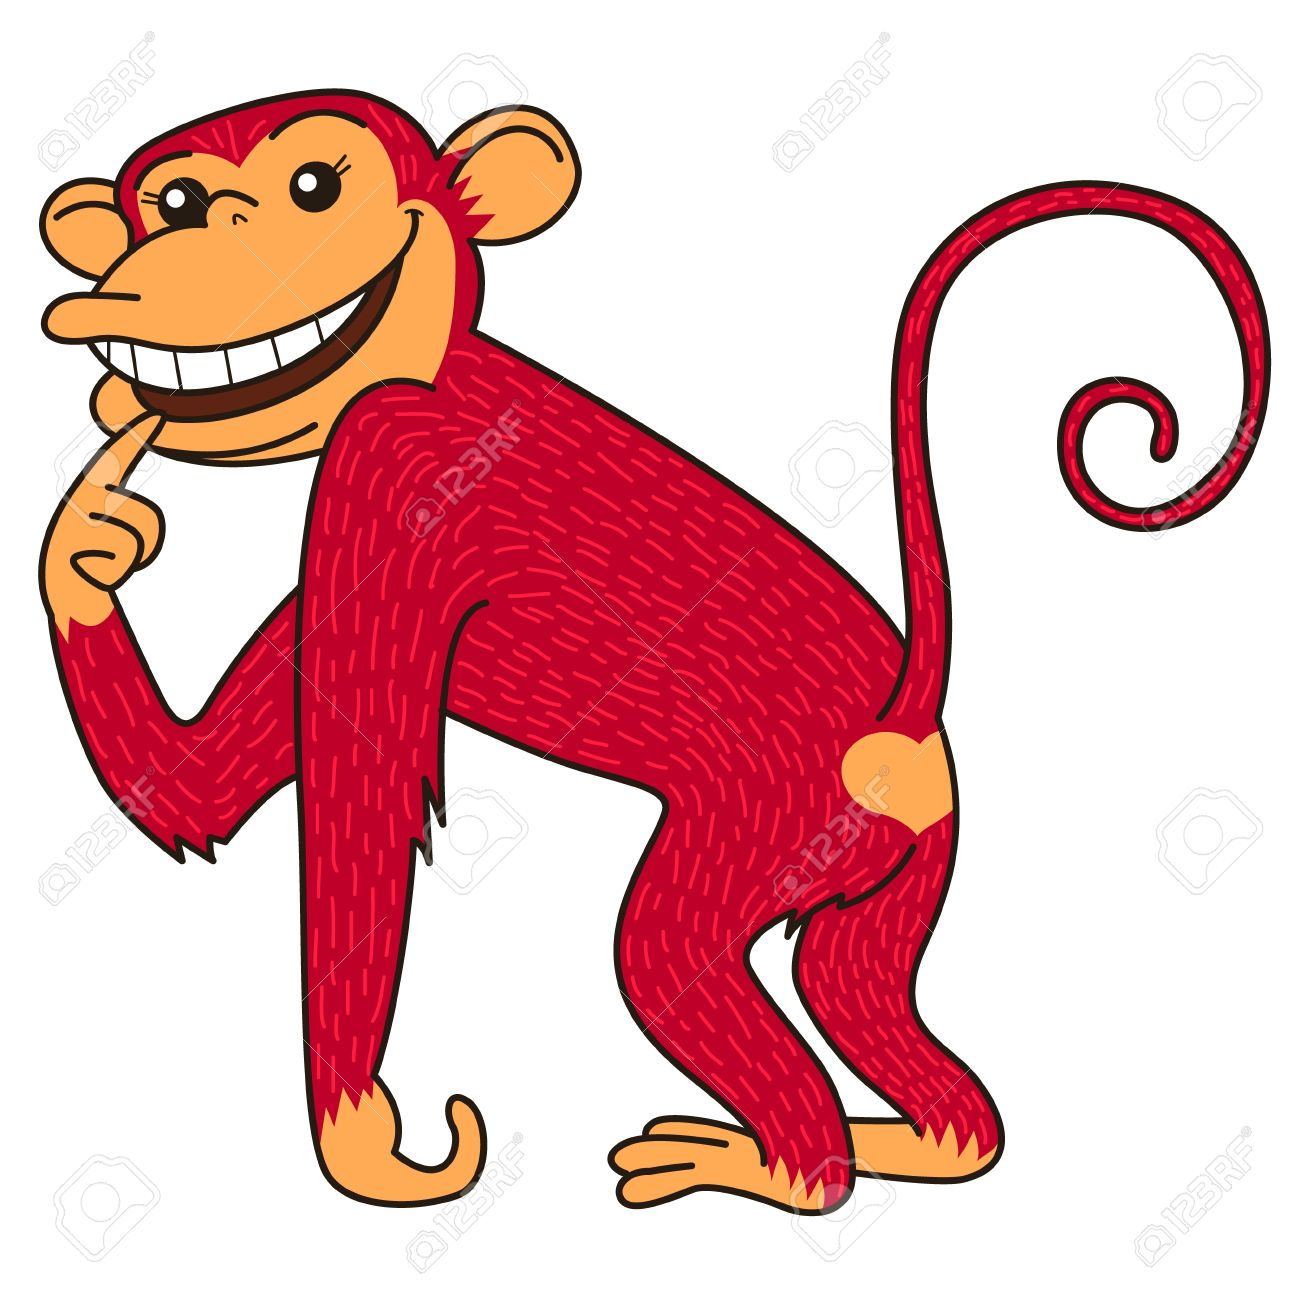 Red Monkey Is A Symbol Of The Year According To Chinese Zodiac